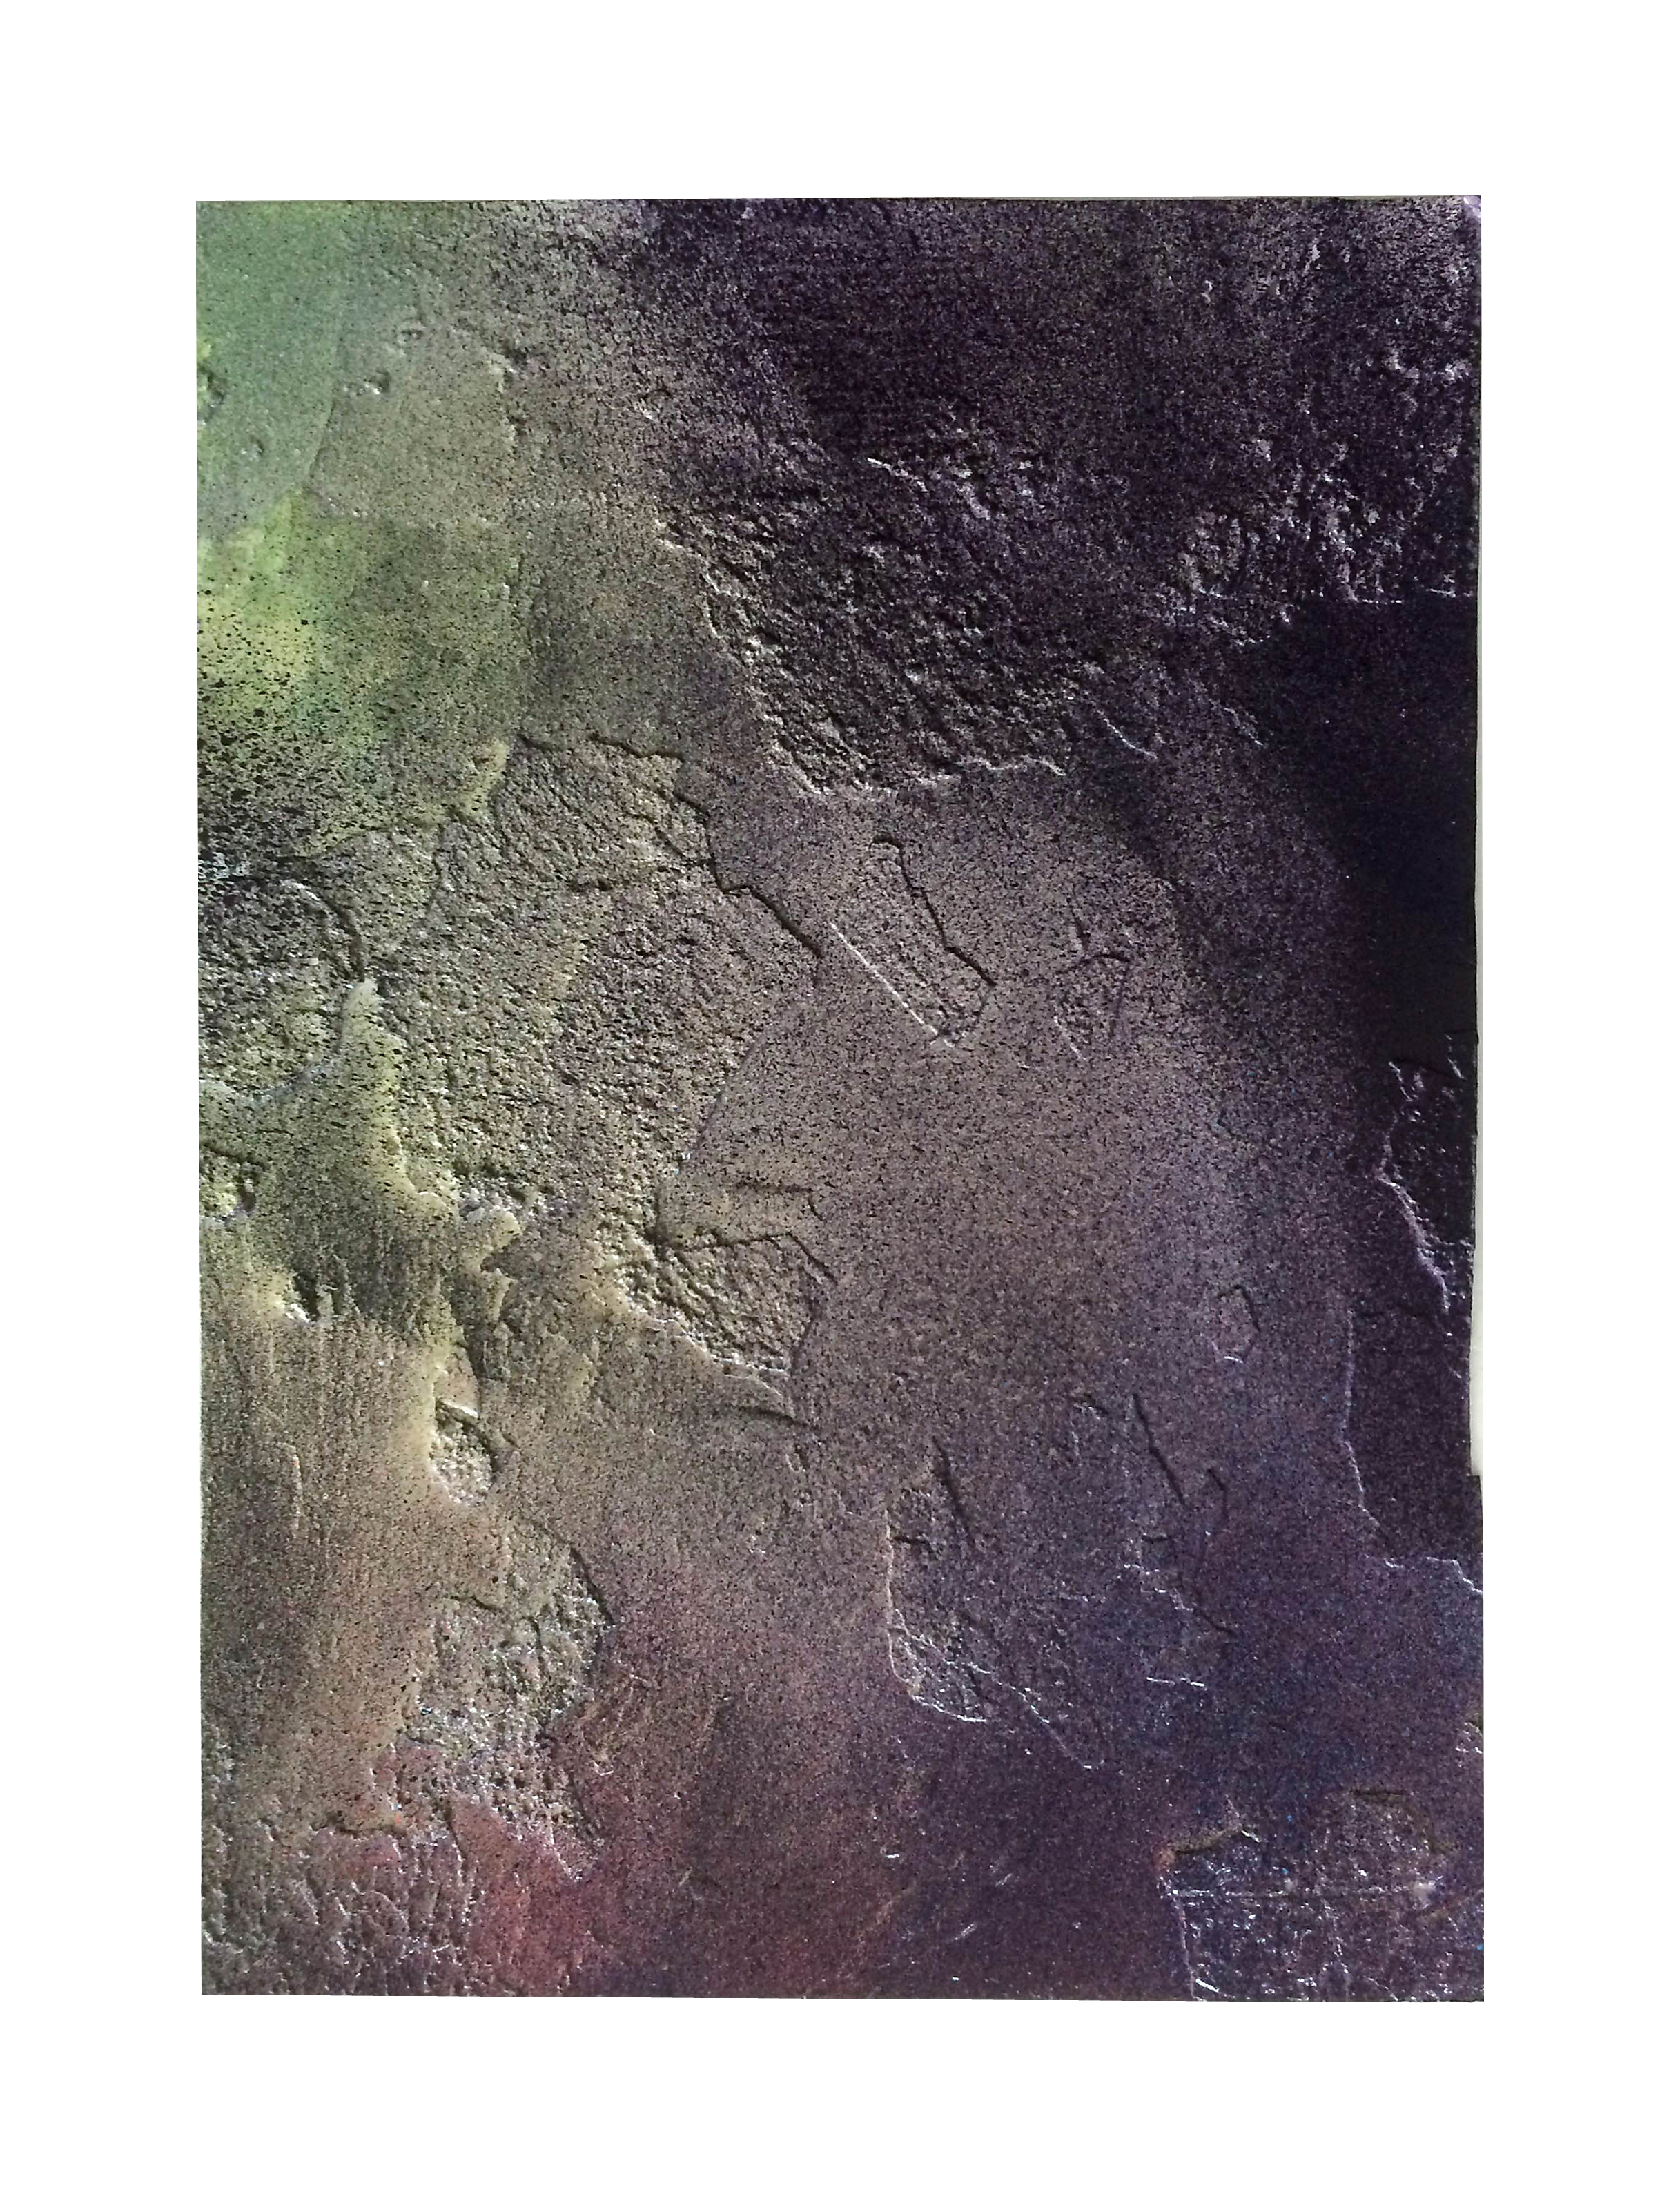 Untitled (  burnt   7), 2016   Oil pastell,  spray paint, paraffin wax and resin on paper  30 x 21 cm